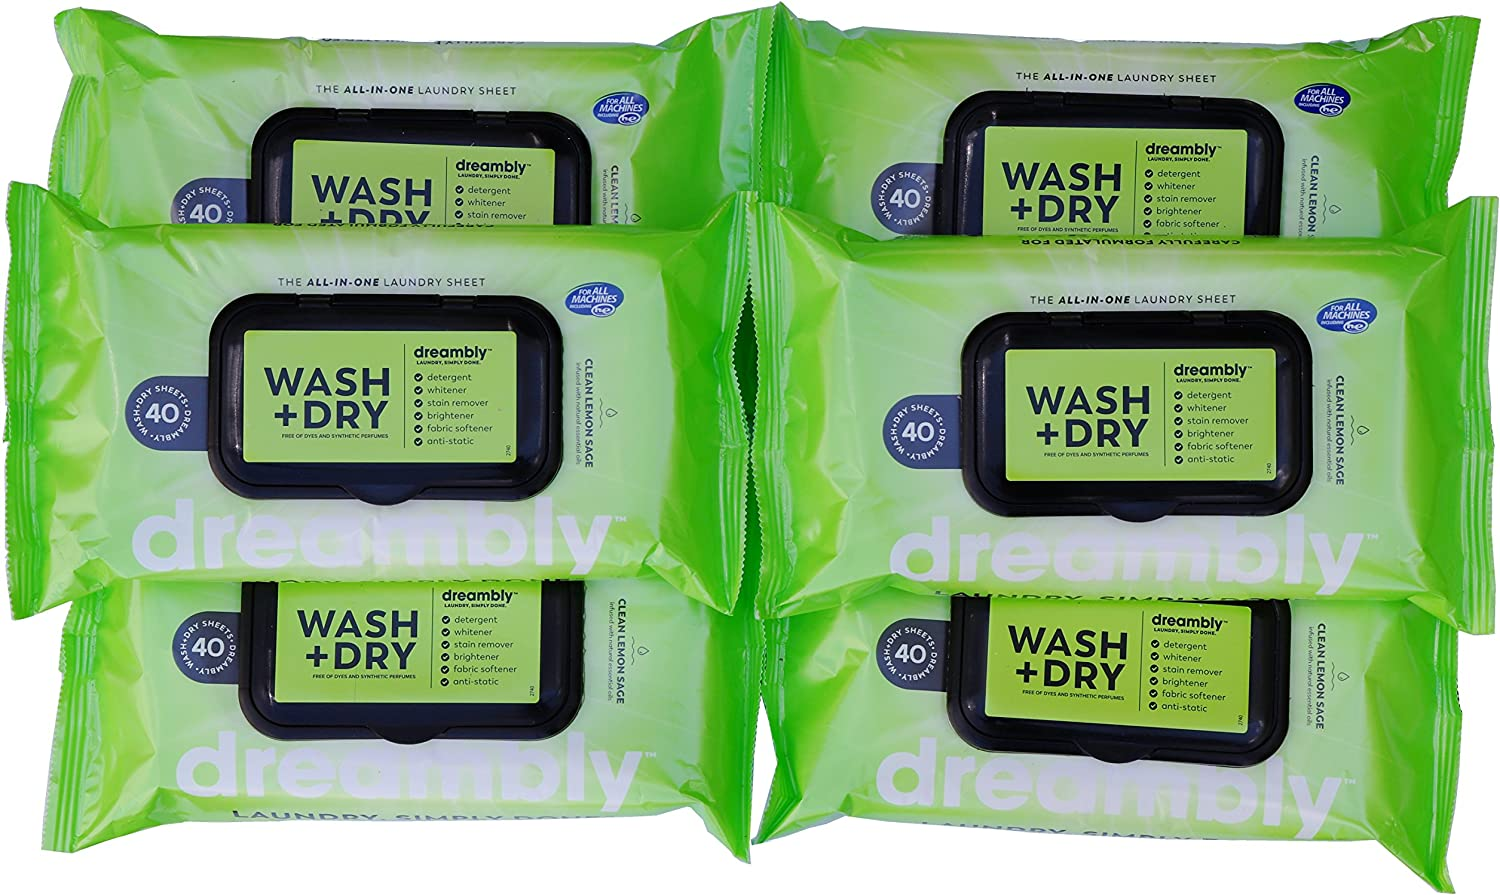 Dreambly Laundry Sheet, Organic, 6 in 1 Detergent, Whitener, Stain Remover, Brightener, Fabric Softener, Anti-Static, 240 Sheets (6 Packs)